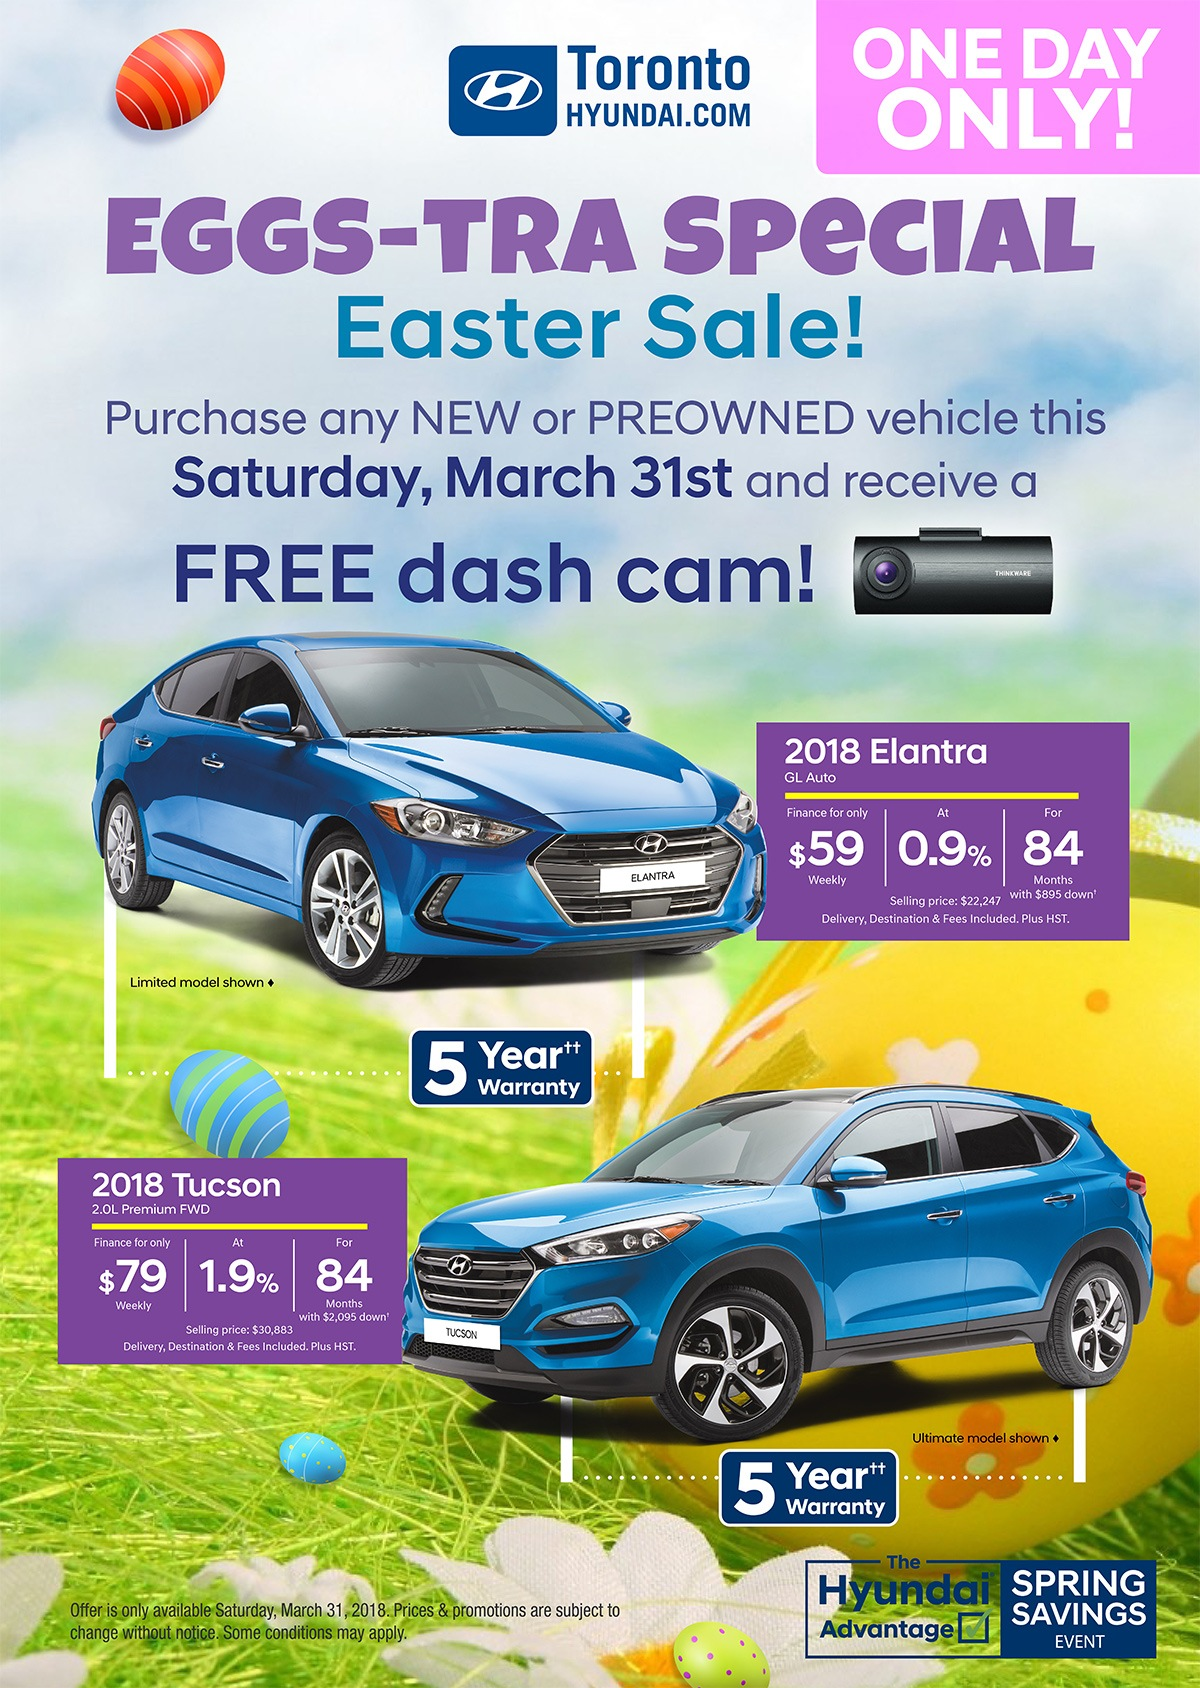 18740-TH-March-Special-Easter-Sale-Landing-Page-2